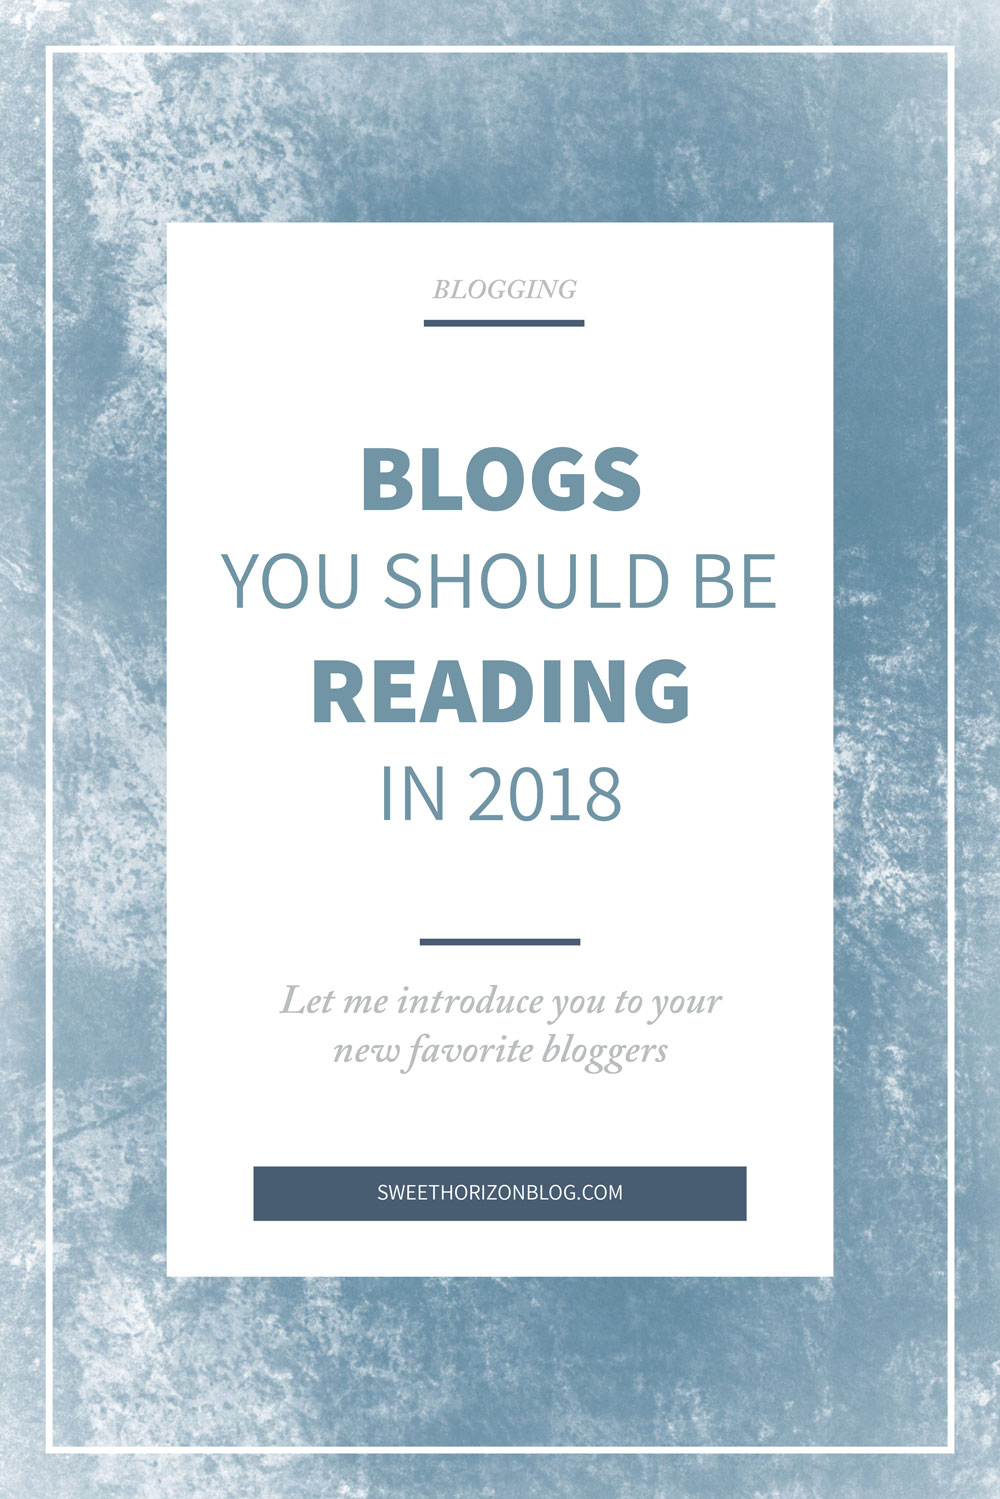 Blogs You Should Be Reading in 2018 from www.sweethorizonblog.com